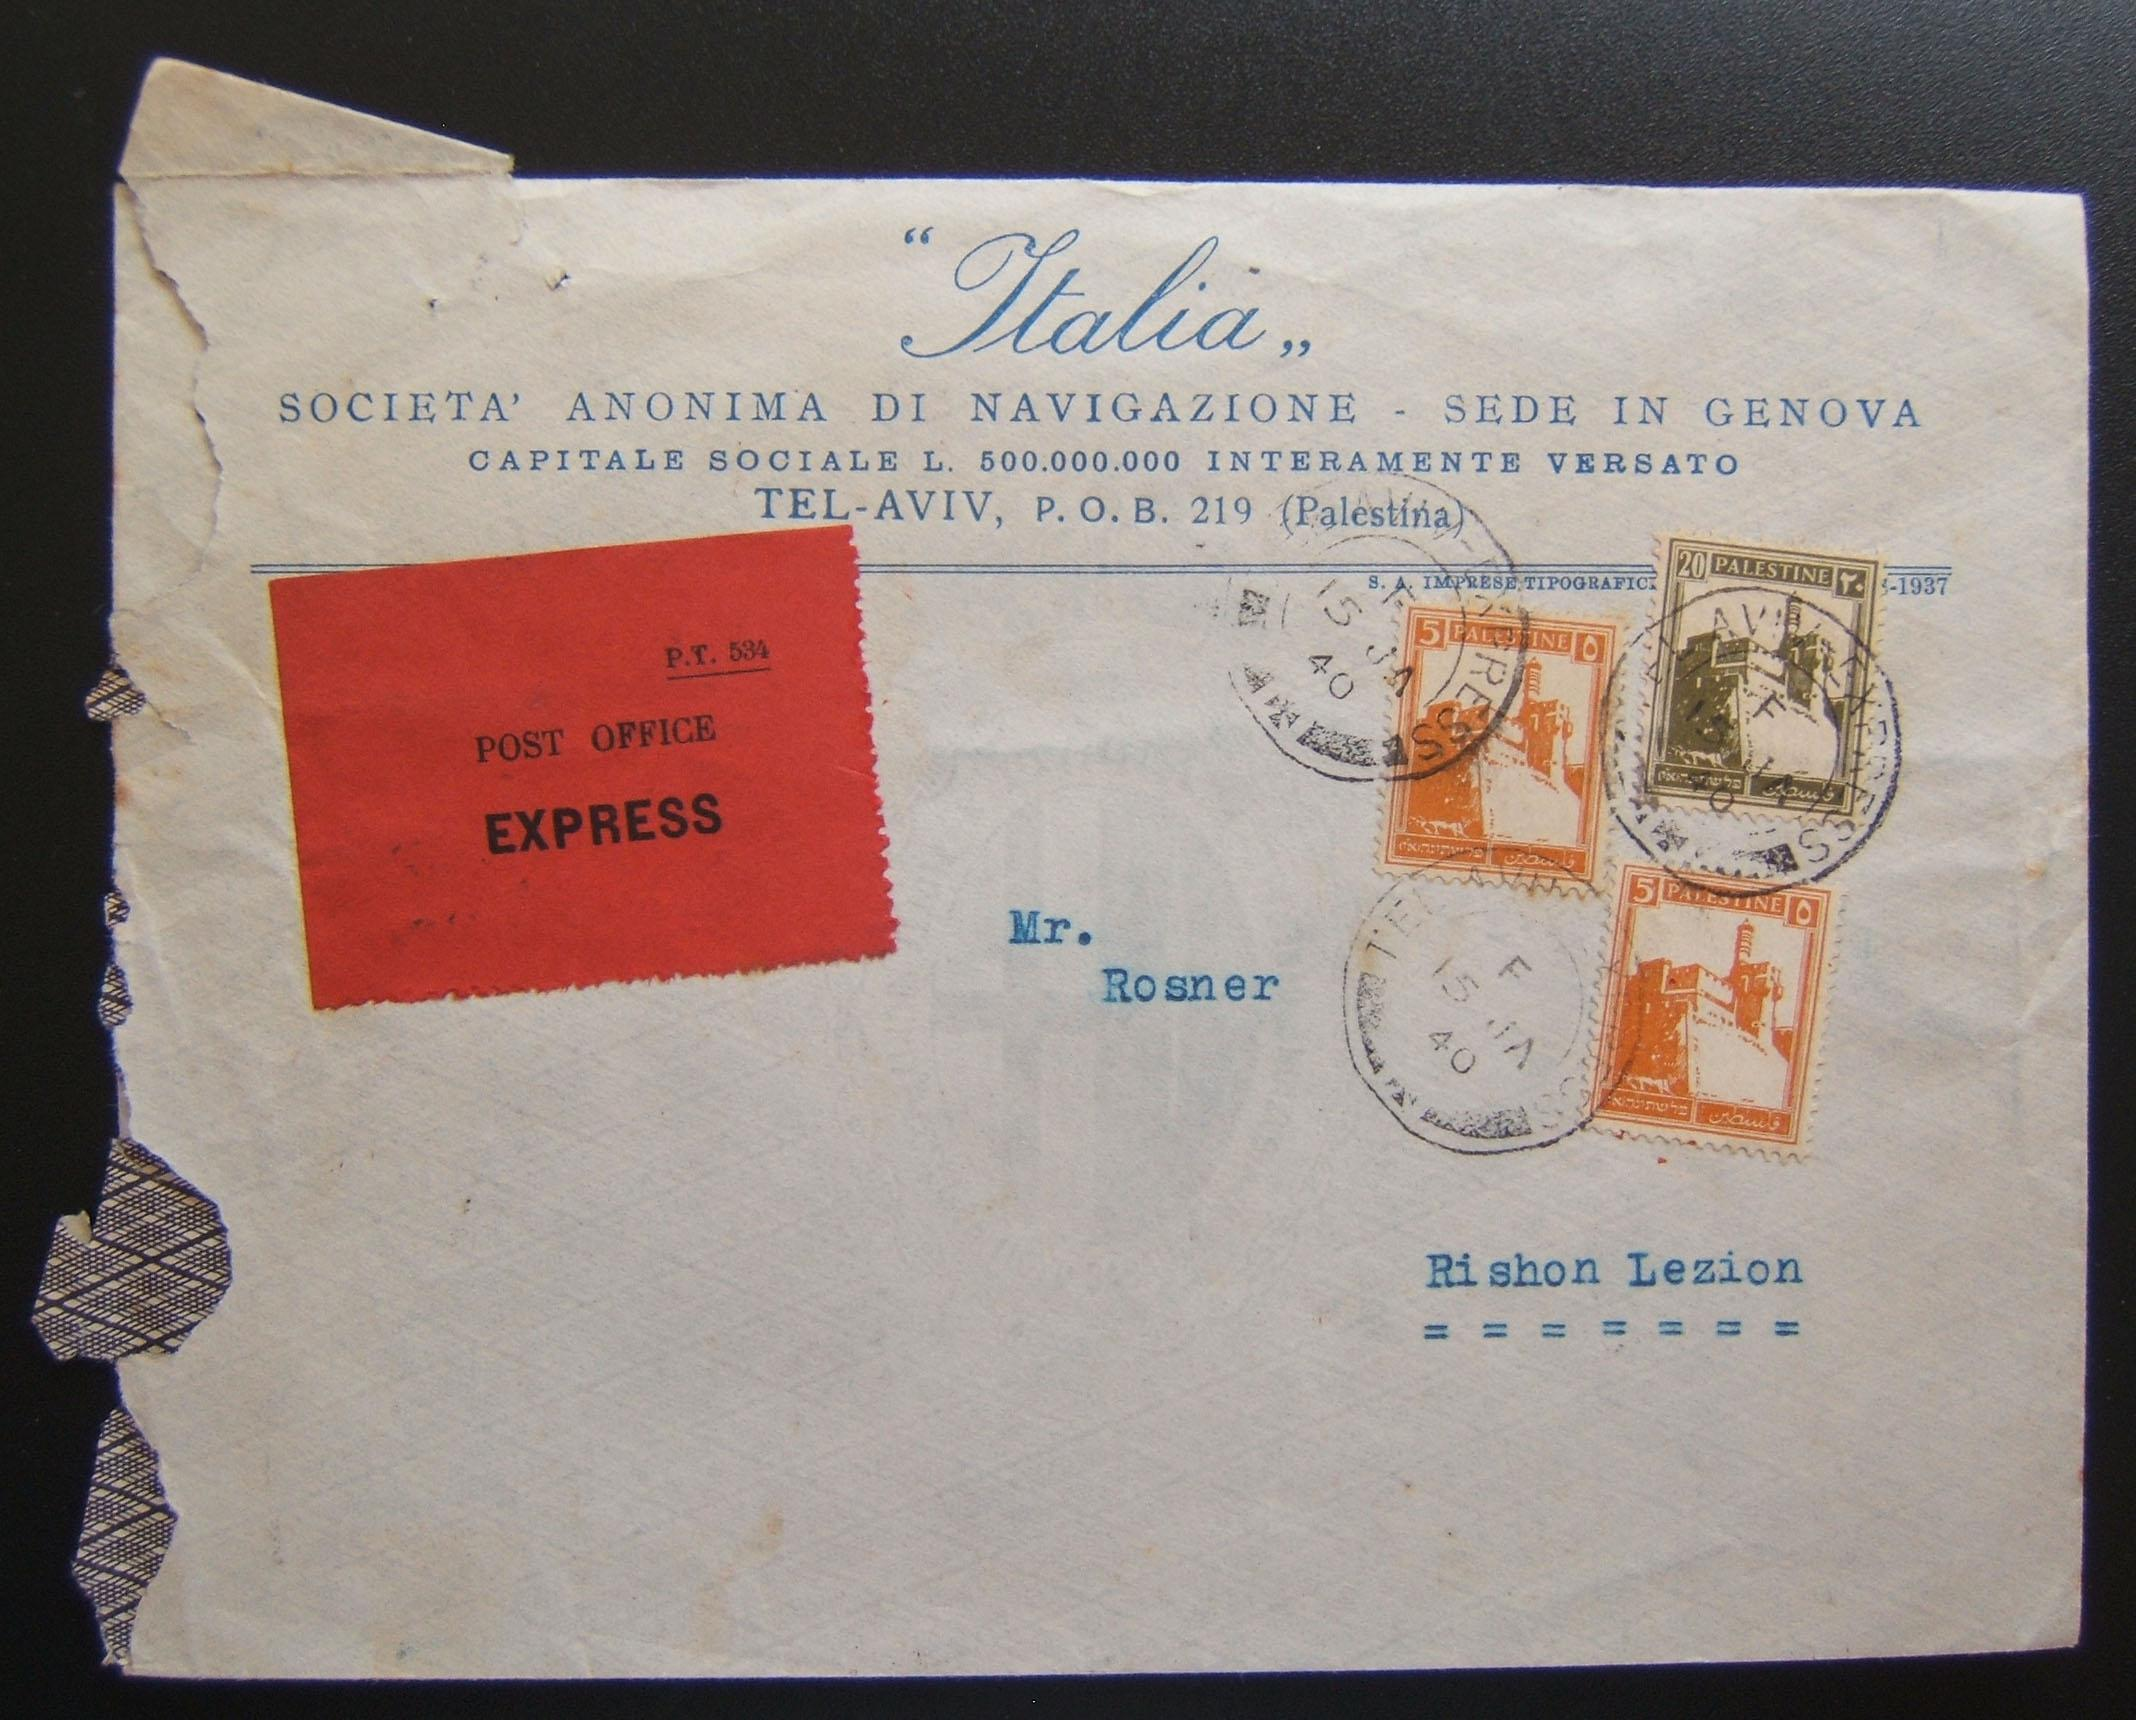 TEL AVIV to RLZ express cover on [Italian Lloyd] business statonary, franked 25m + 5m (20 + 5 + 5) at the period rate, postmarked 15 JA 40 with 3 strikes pmk H3 and marked with sca